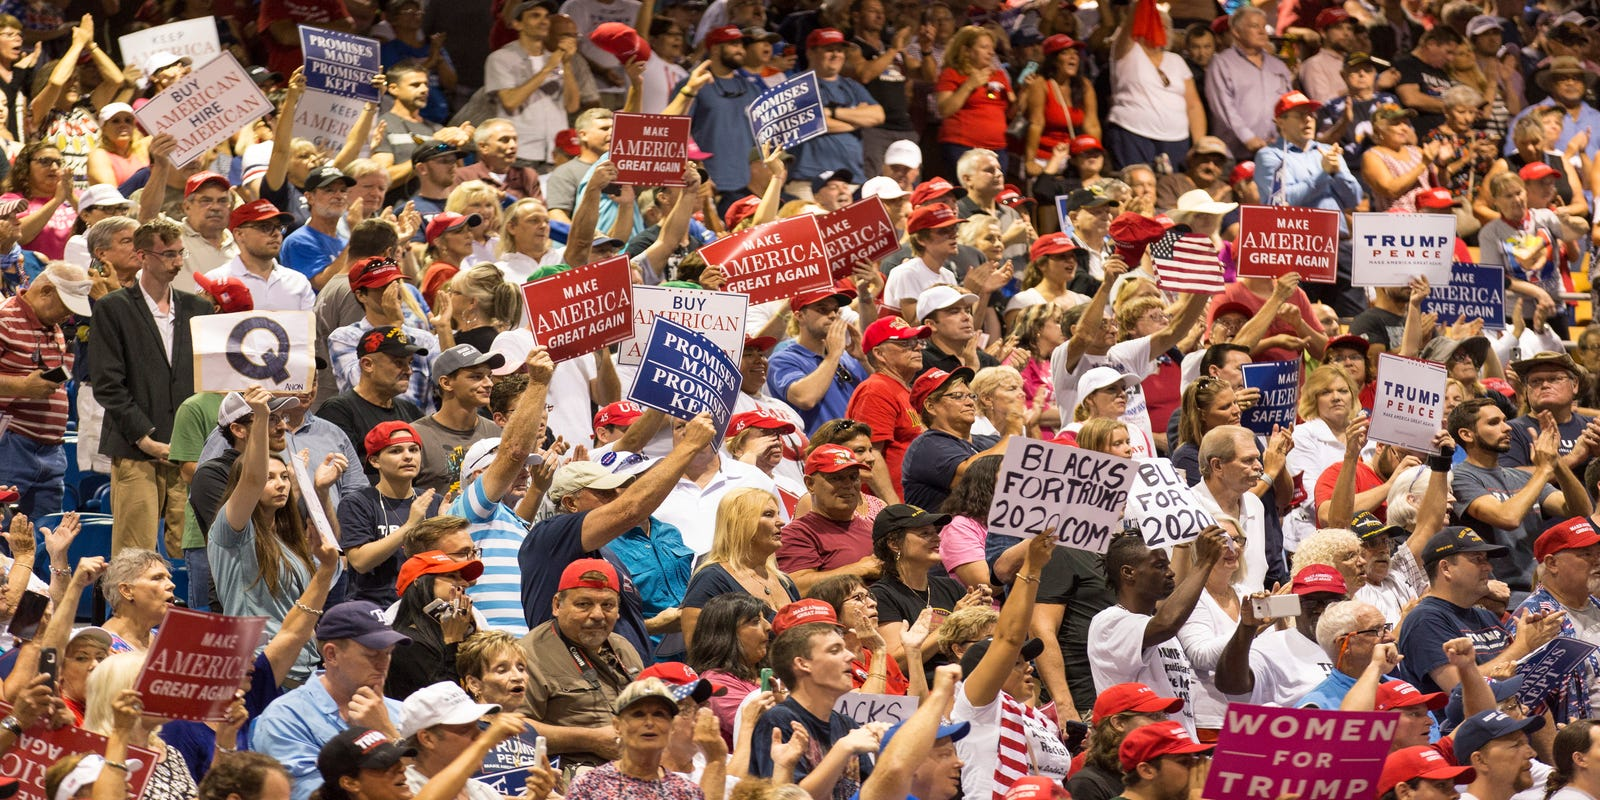 QAnon at Trump Florida rally: What the Q signs mean